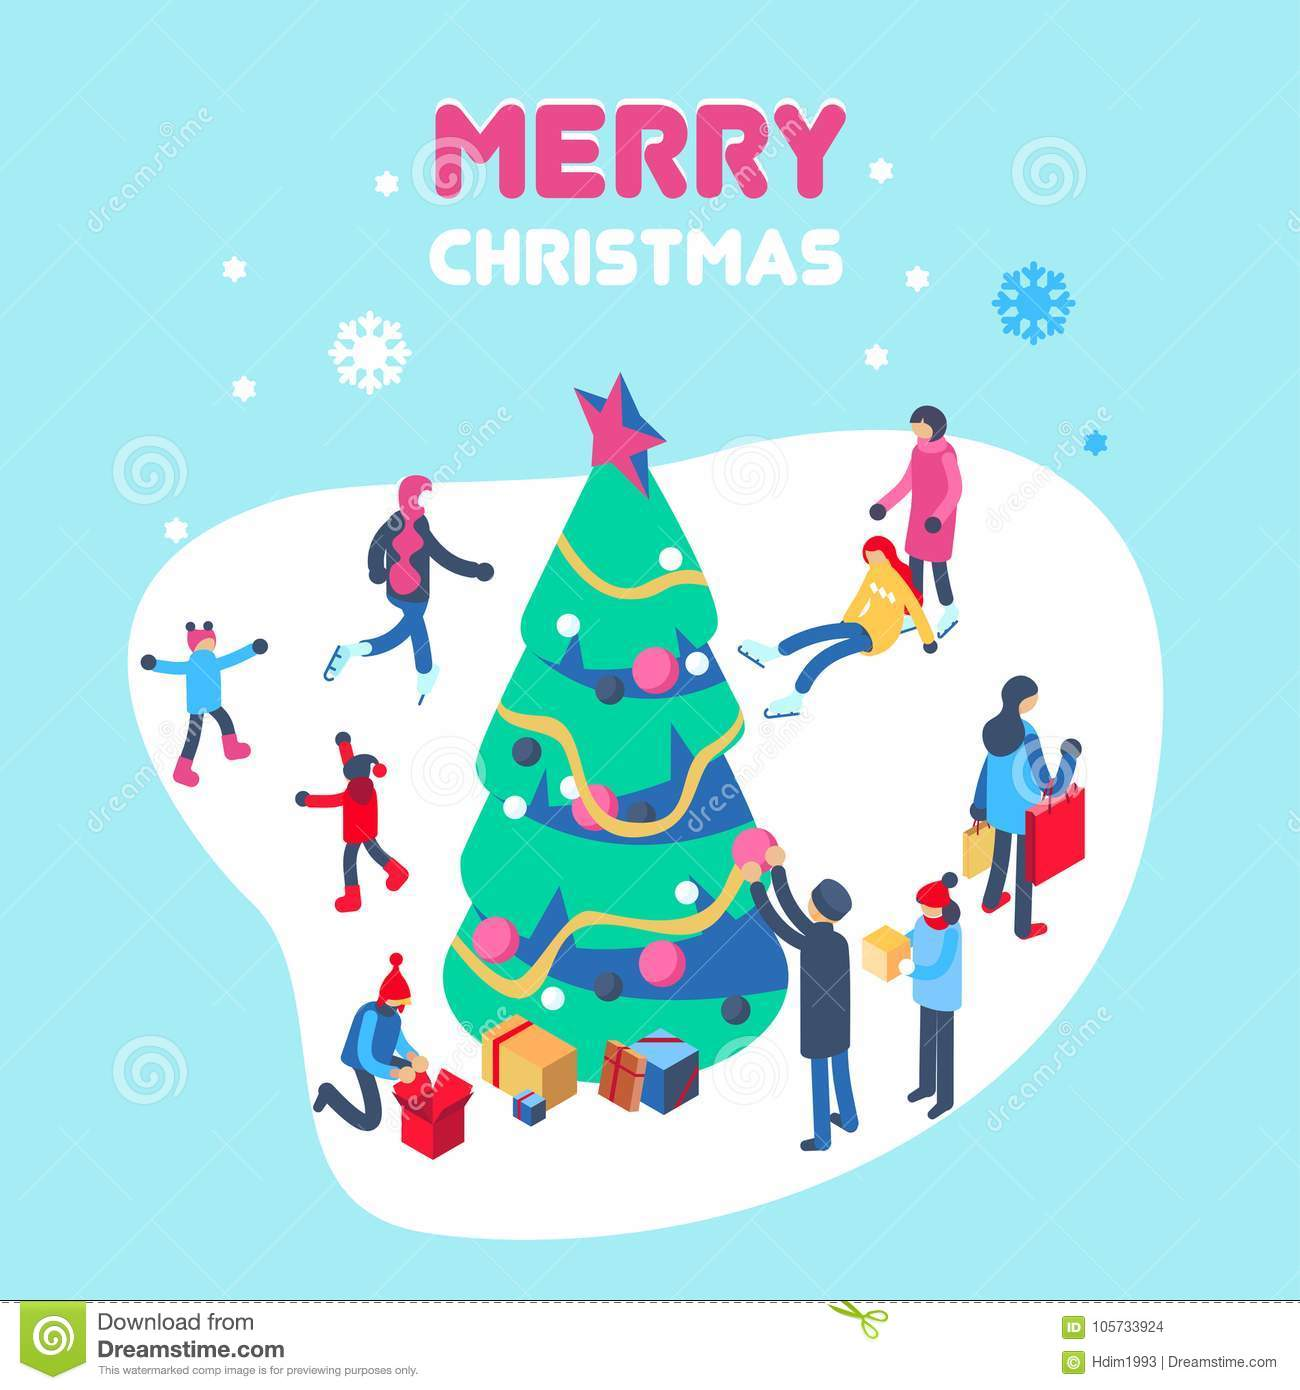 download happy new year and merry christmas card with winter outdoor leisure activities isometric vector - Christmas Eve Activities